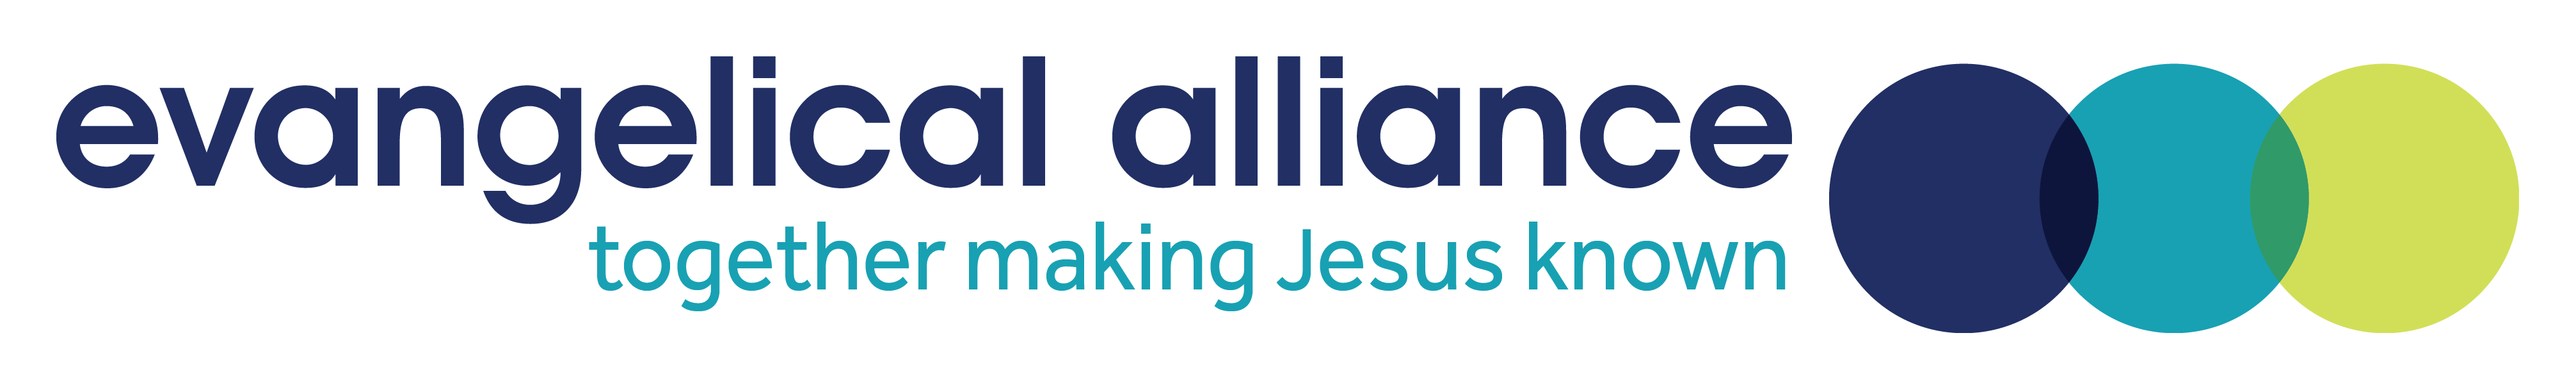 Evangelical Alliance Logo with the tagline of together making Jesus known